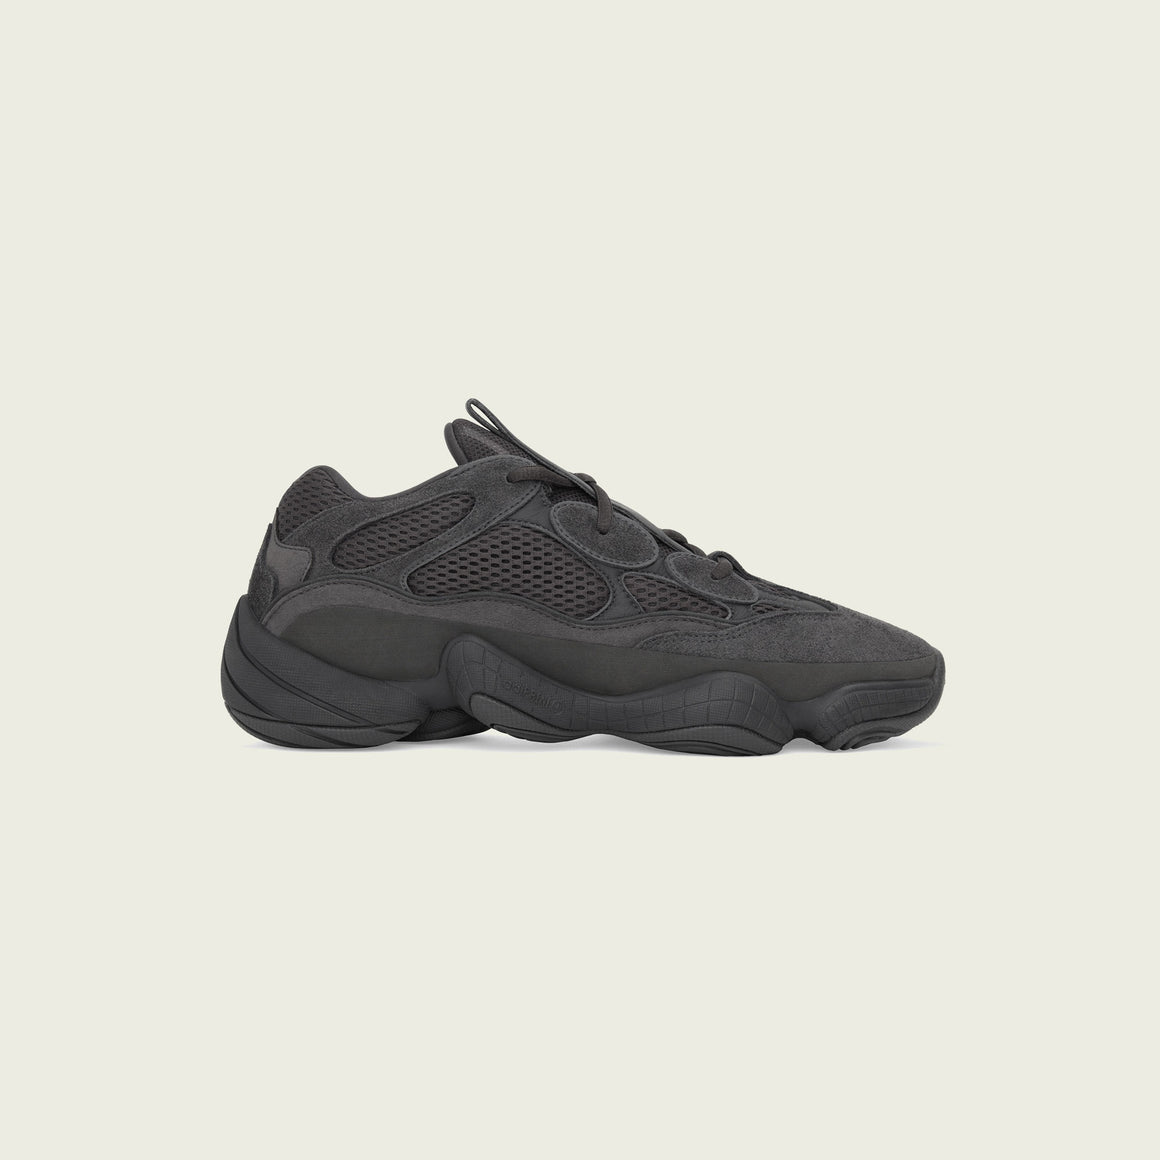 adidas - Yeezy 500 - Utlity Black - Up There